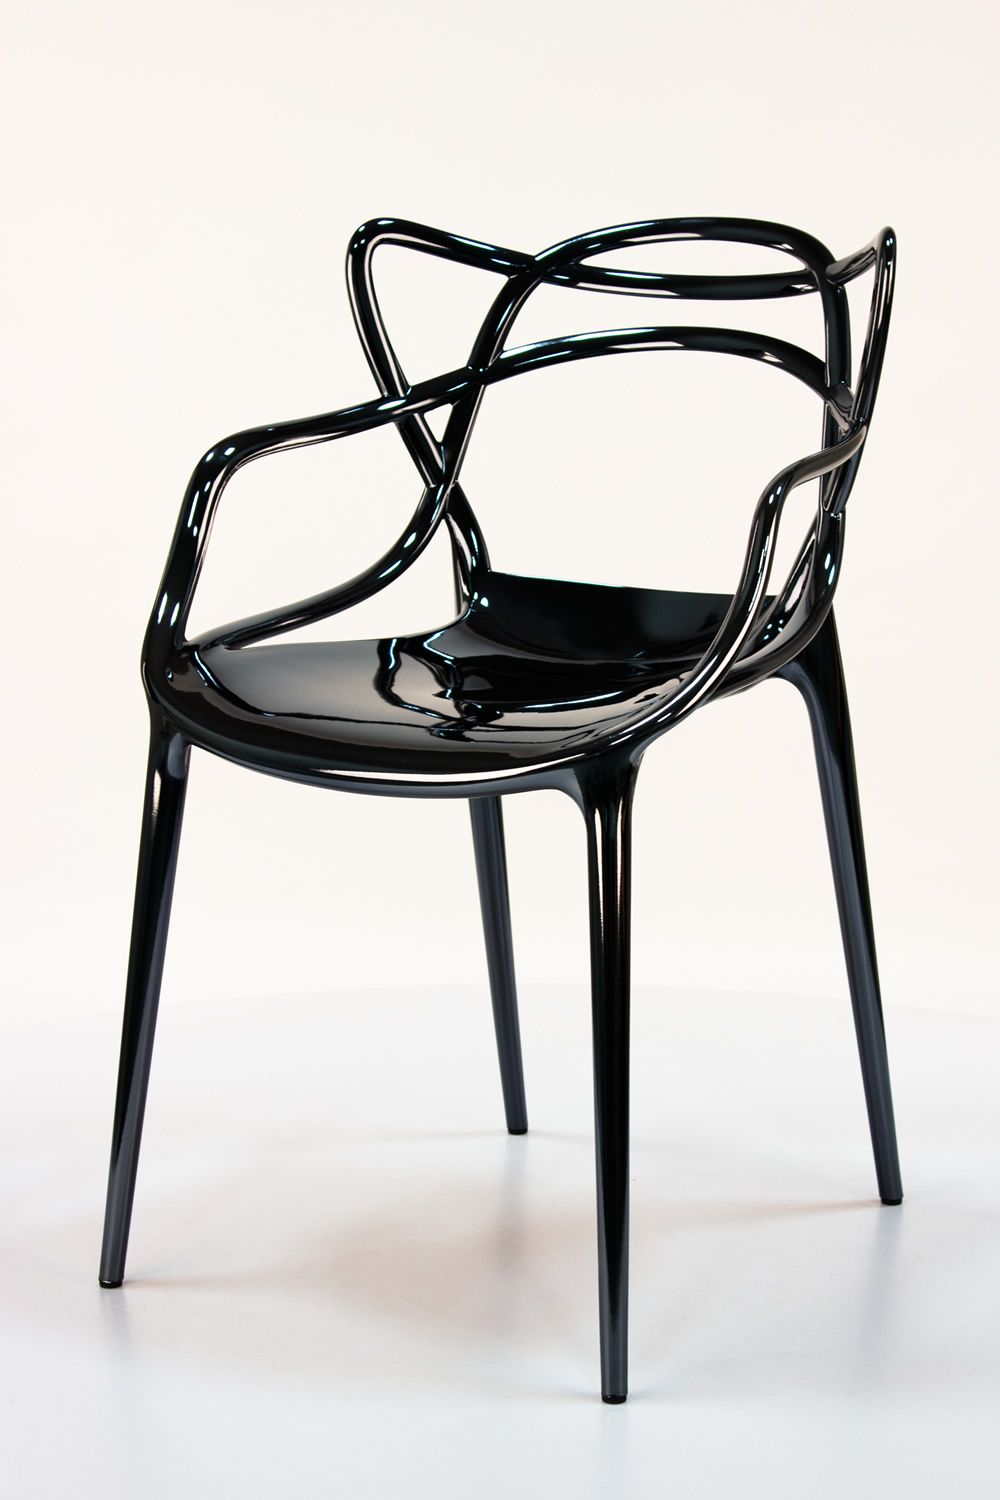 Masters poltroncina kartell di design in polipropilene for Sedie masters kartell scontate